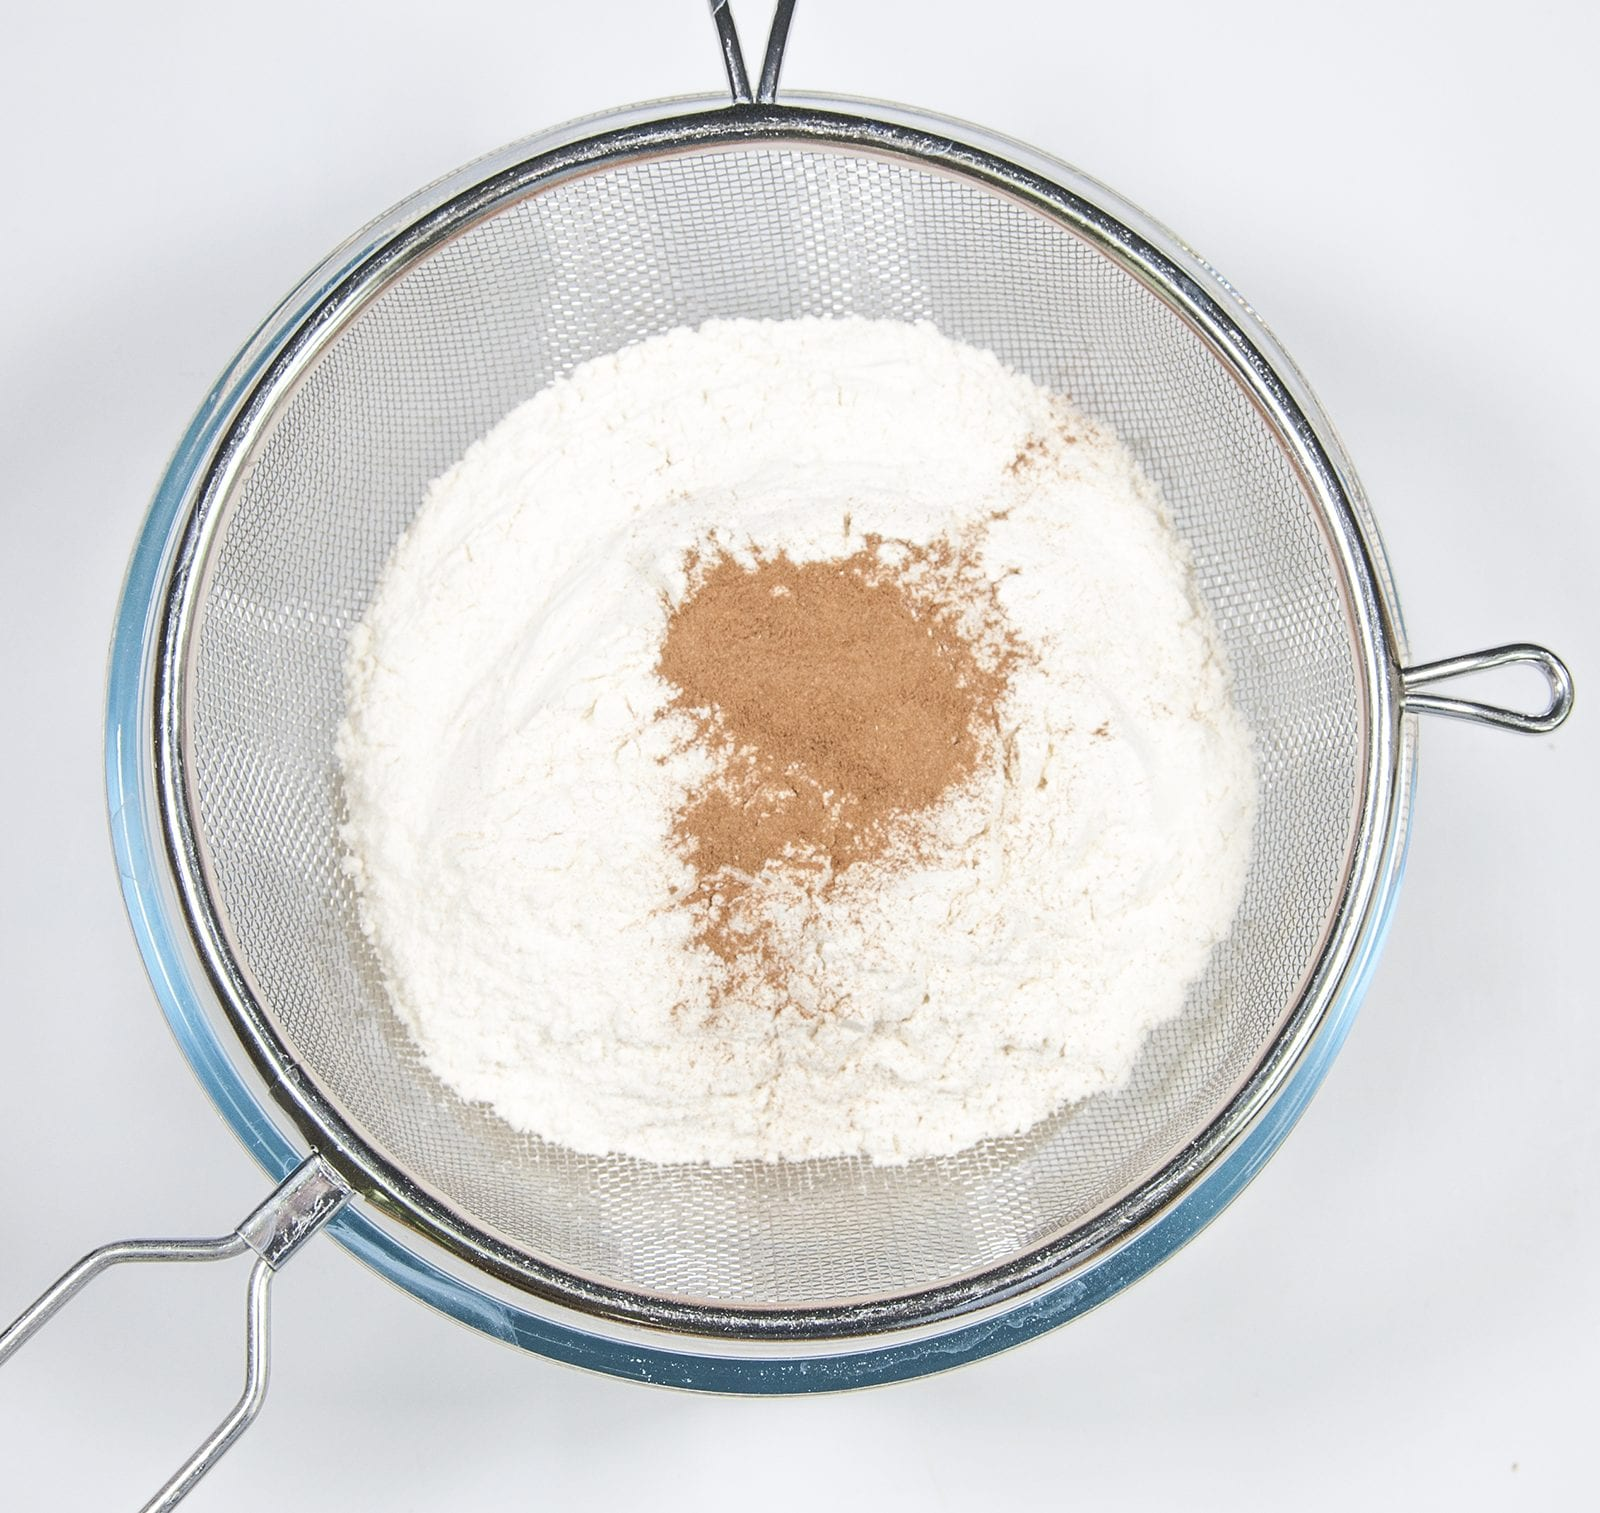 Sieve the flour and cinnamon. Humble Hummingbird Cake With Sweet Pecan Dust | https://theyumyumclub.com/2019/06/05/humble-hummingbird-cake-sweet-pecan-dust/